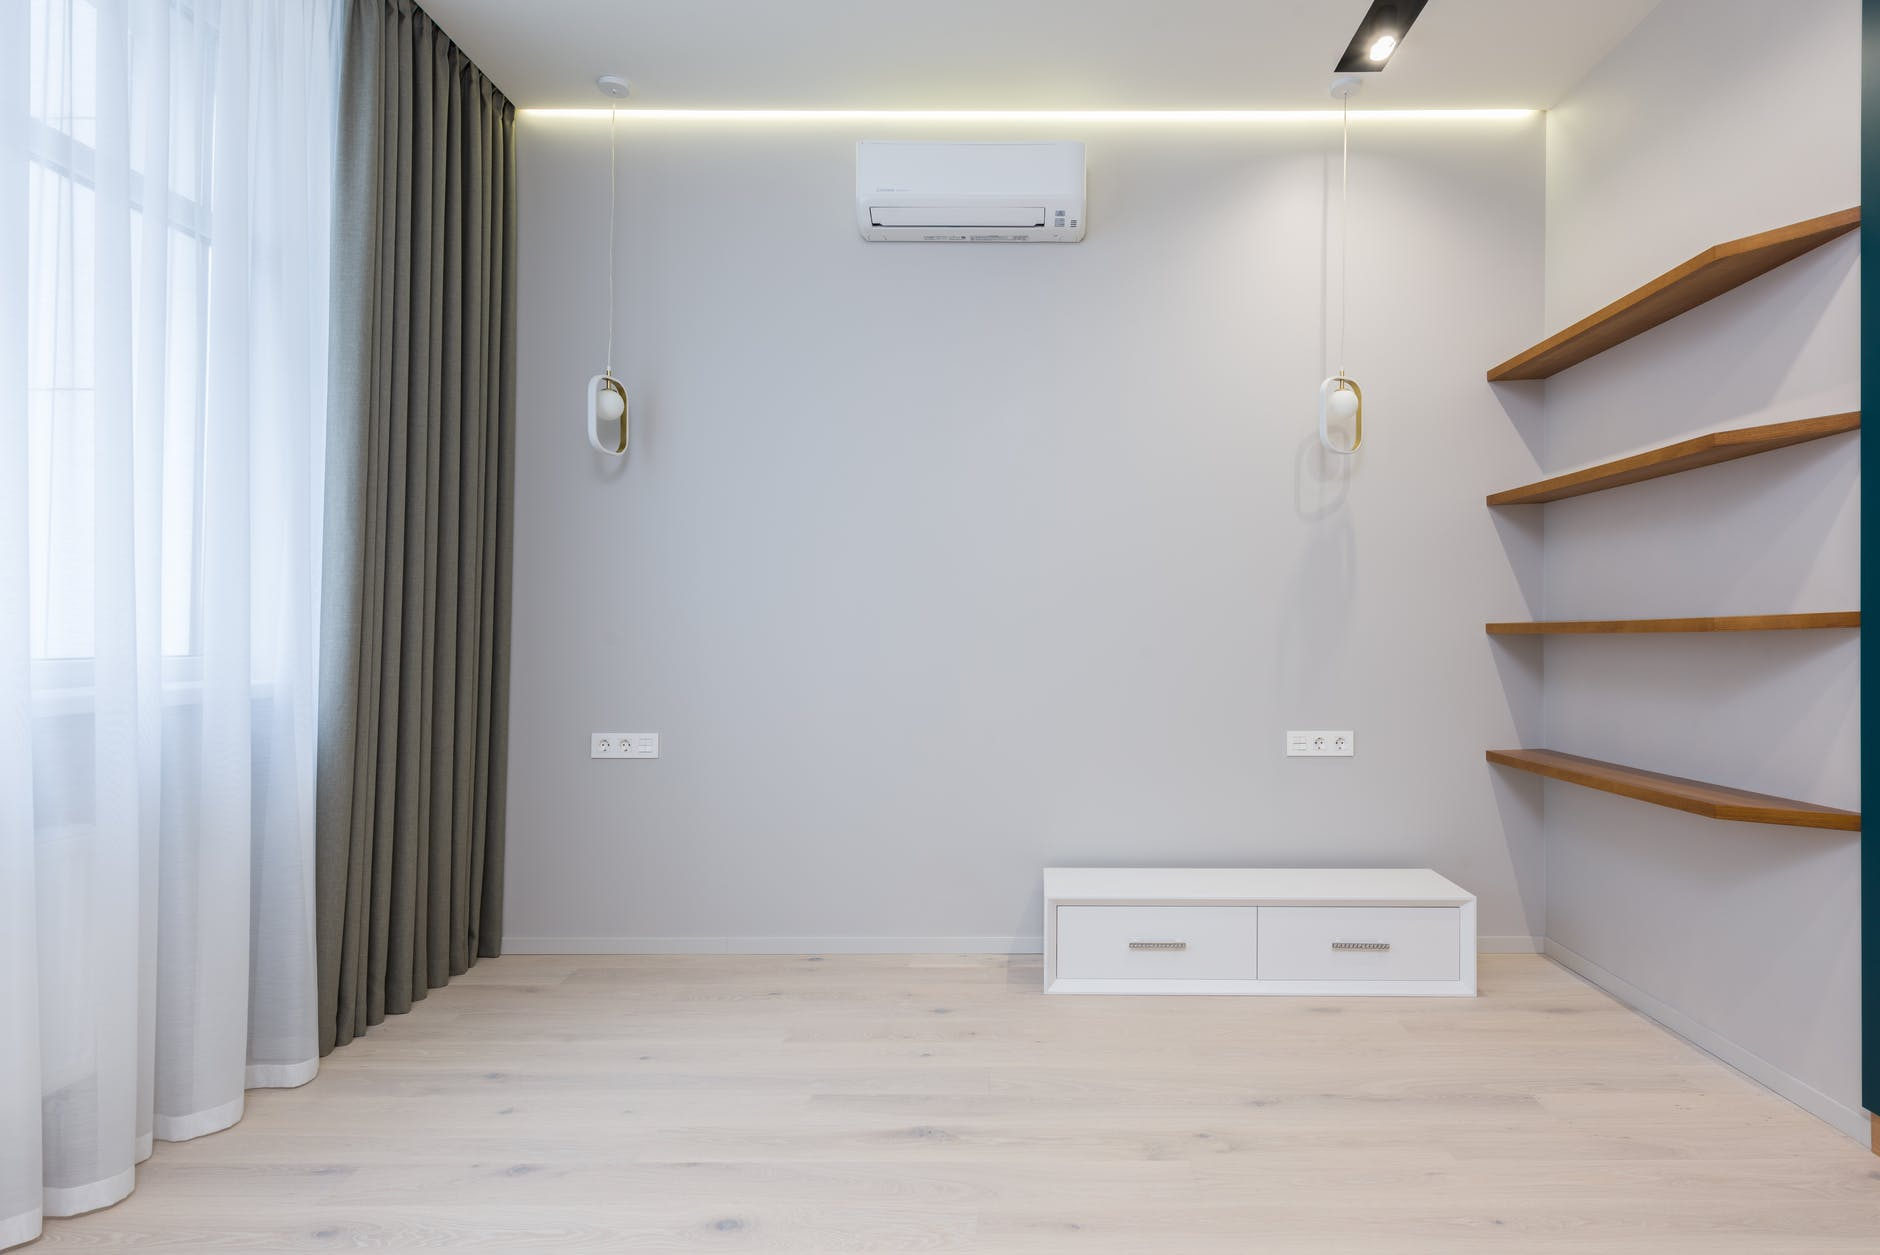 interior of minimalist room with wooden shelves and ac